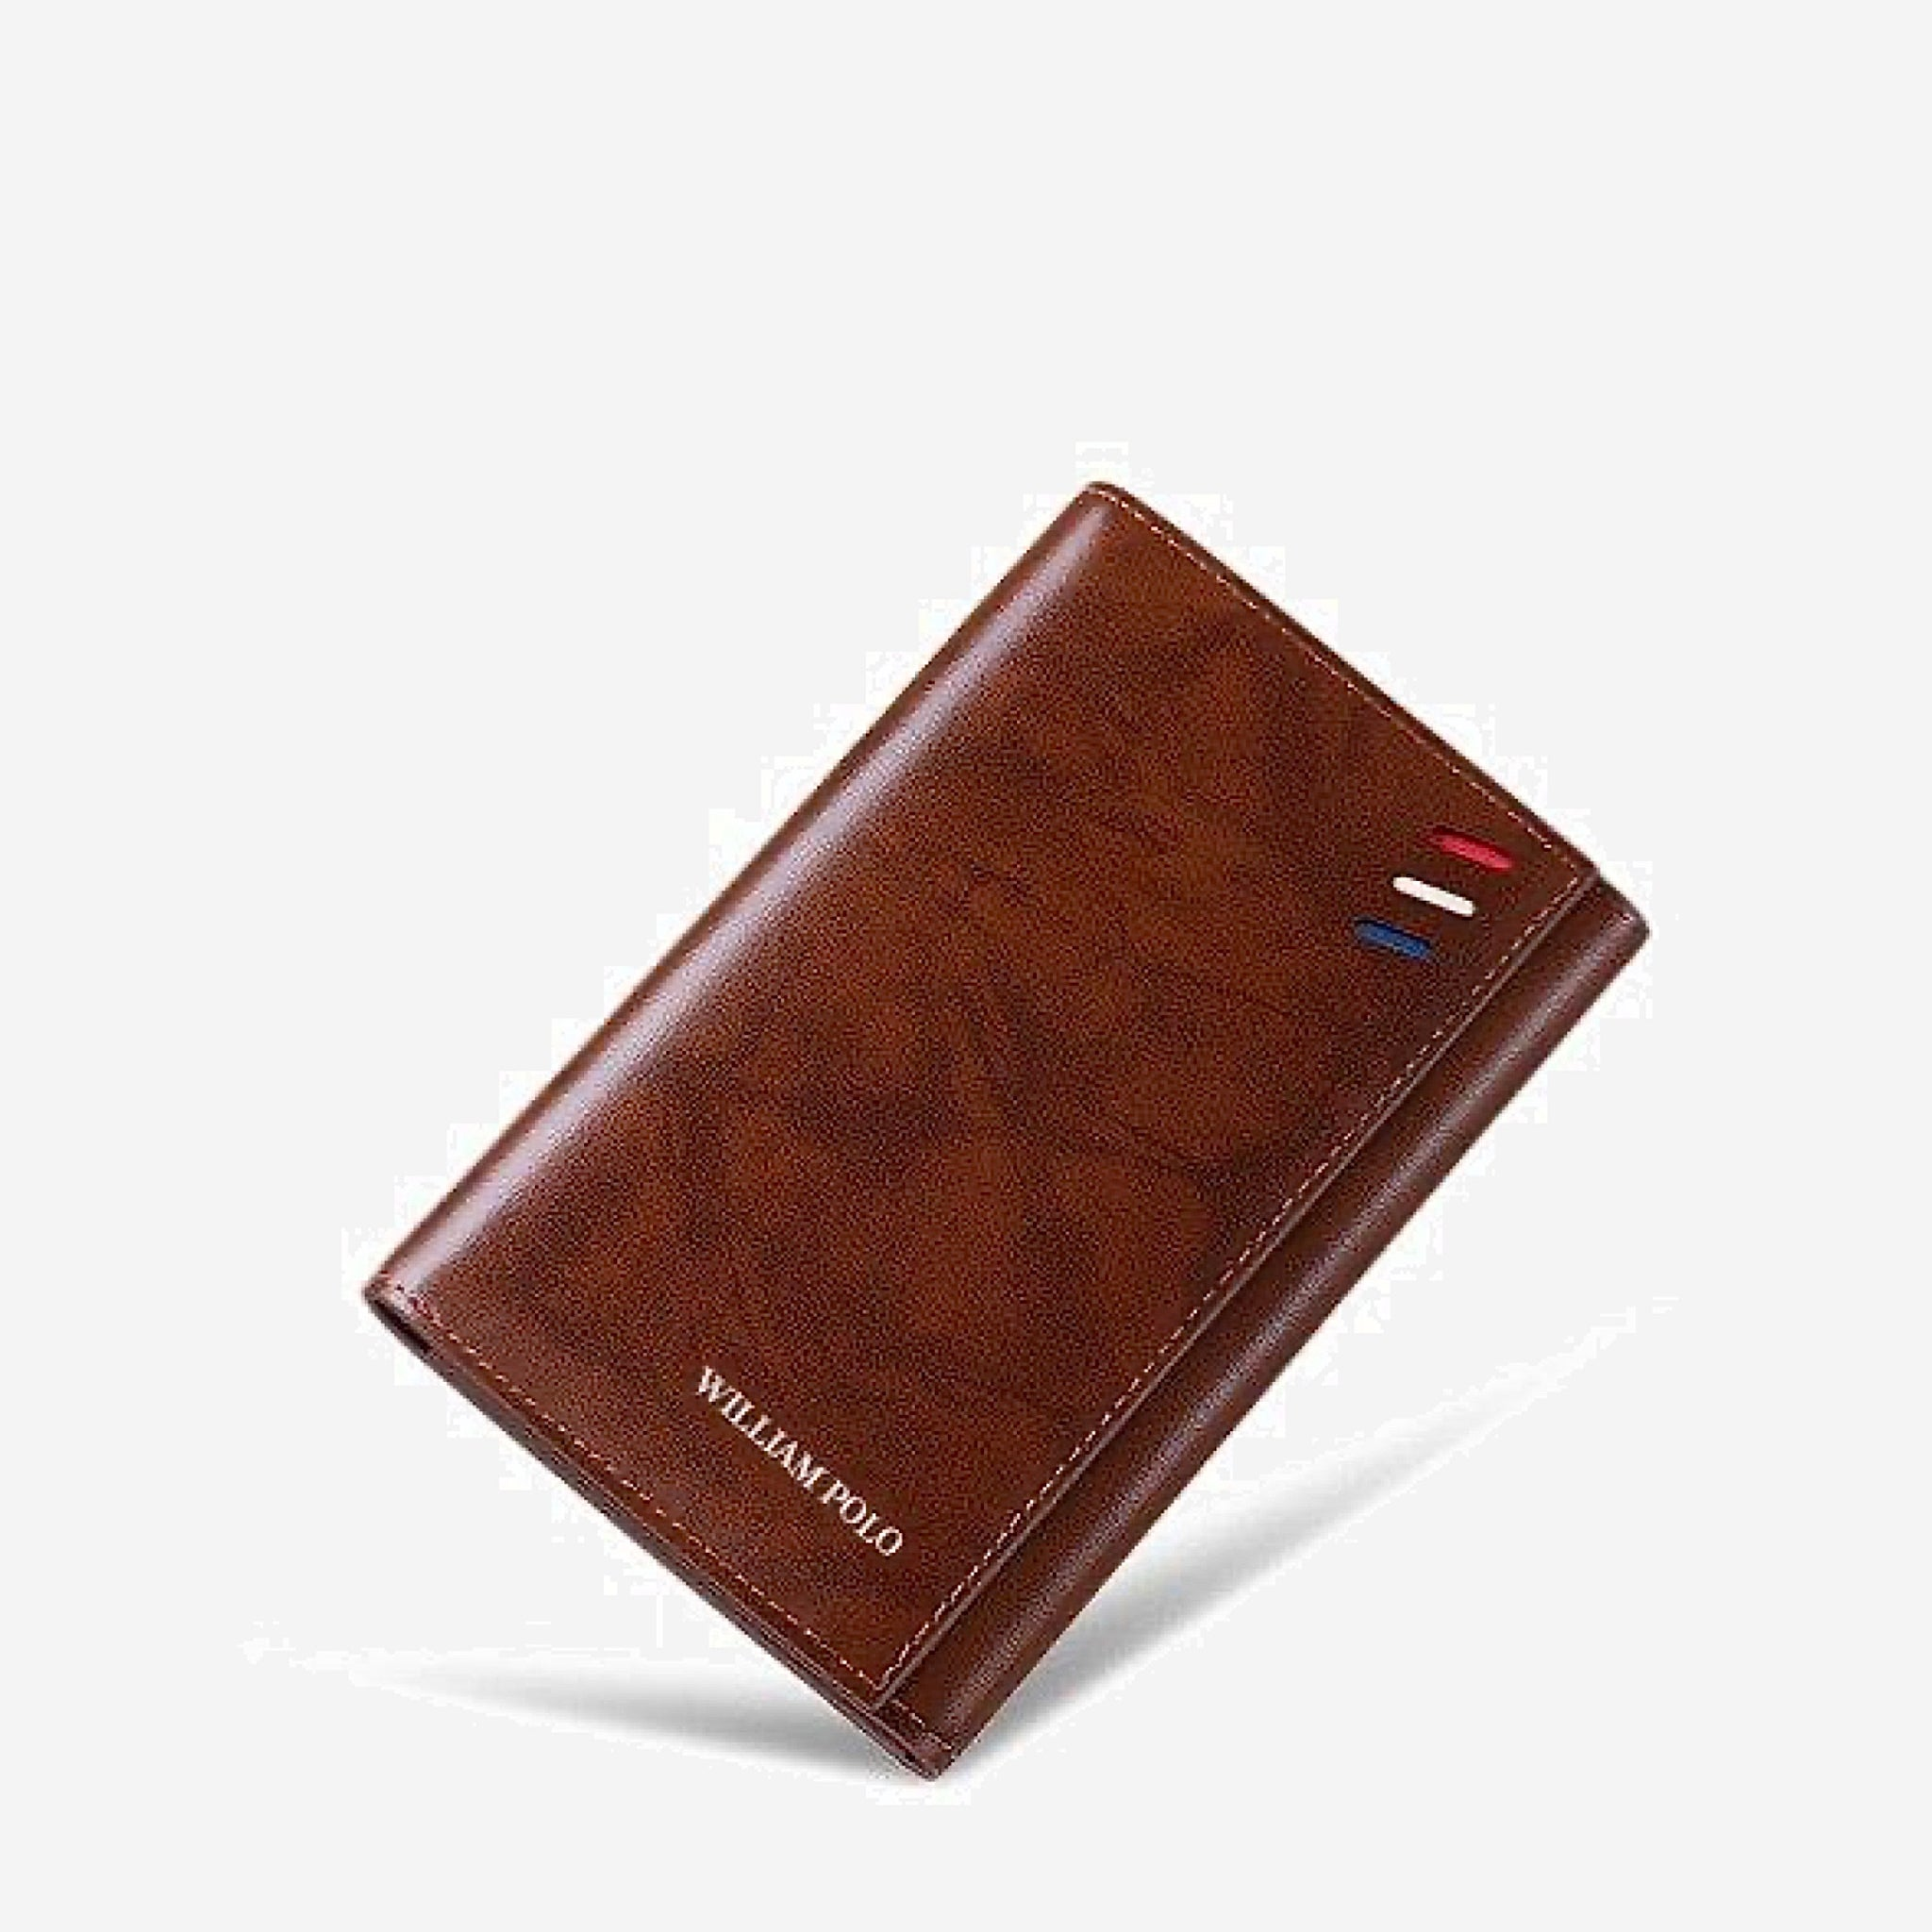 RFID Blocking Brown Cardholder Wallet Elegant slim element three fold multi card position holder ultra thin leather wallets